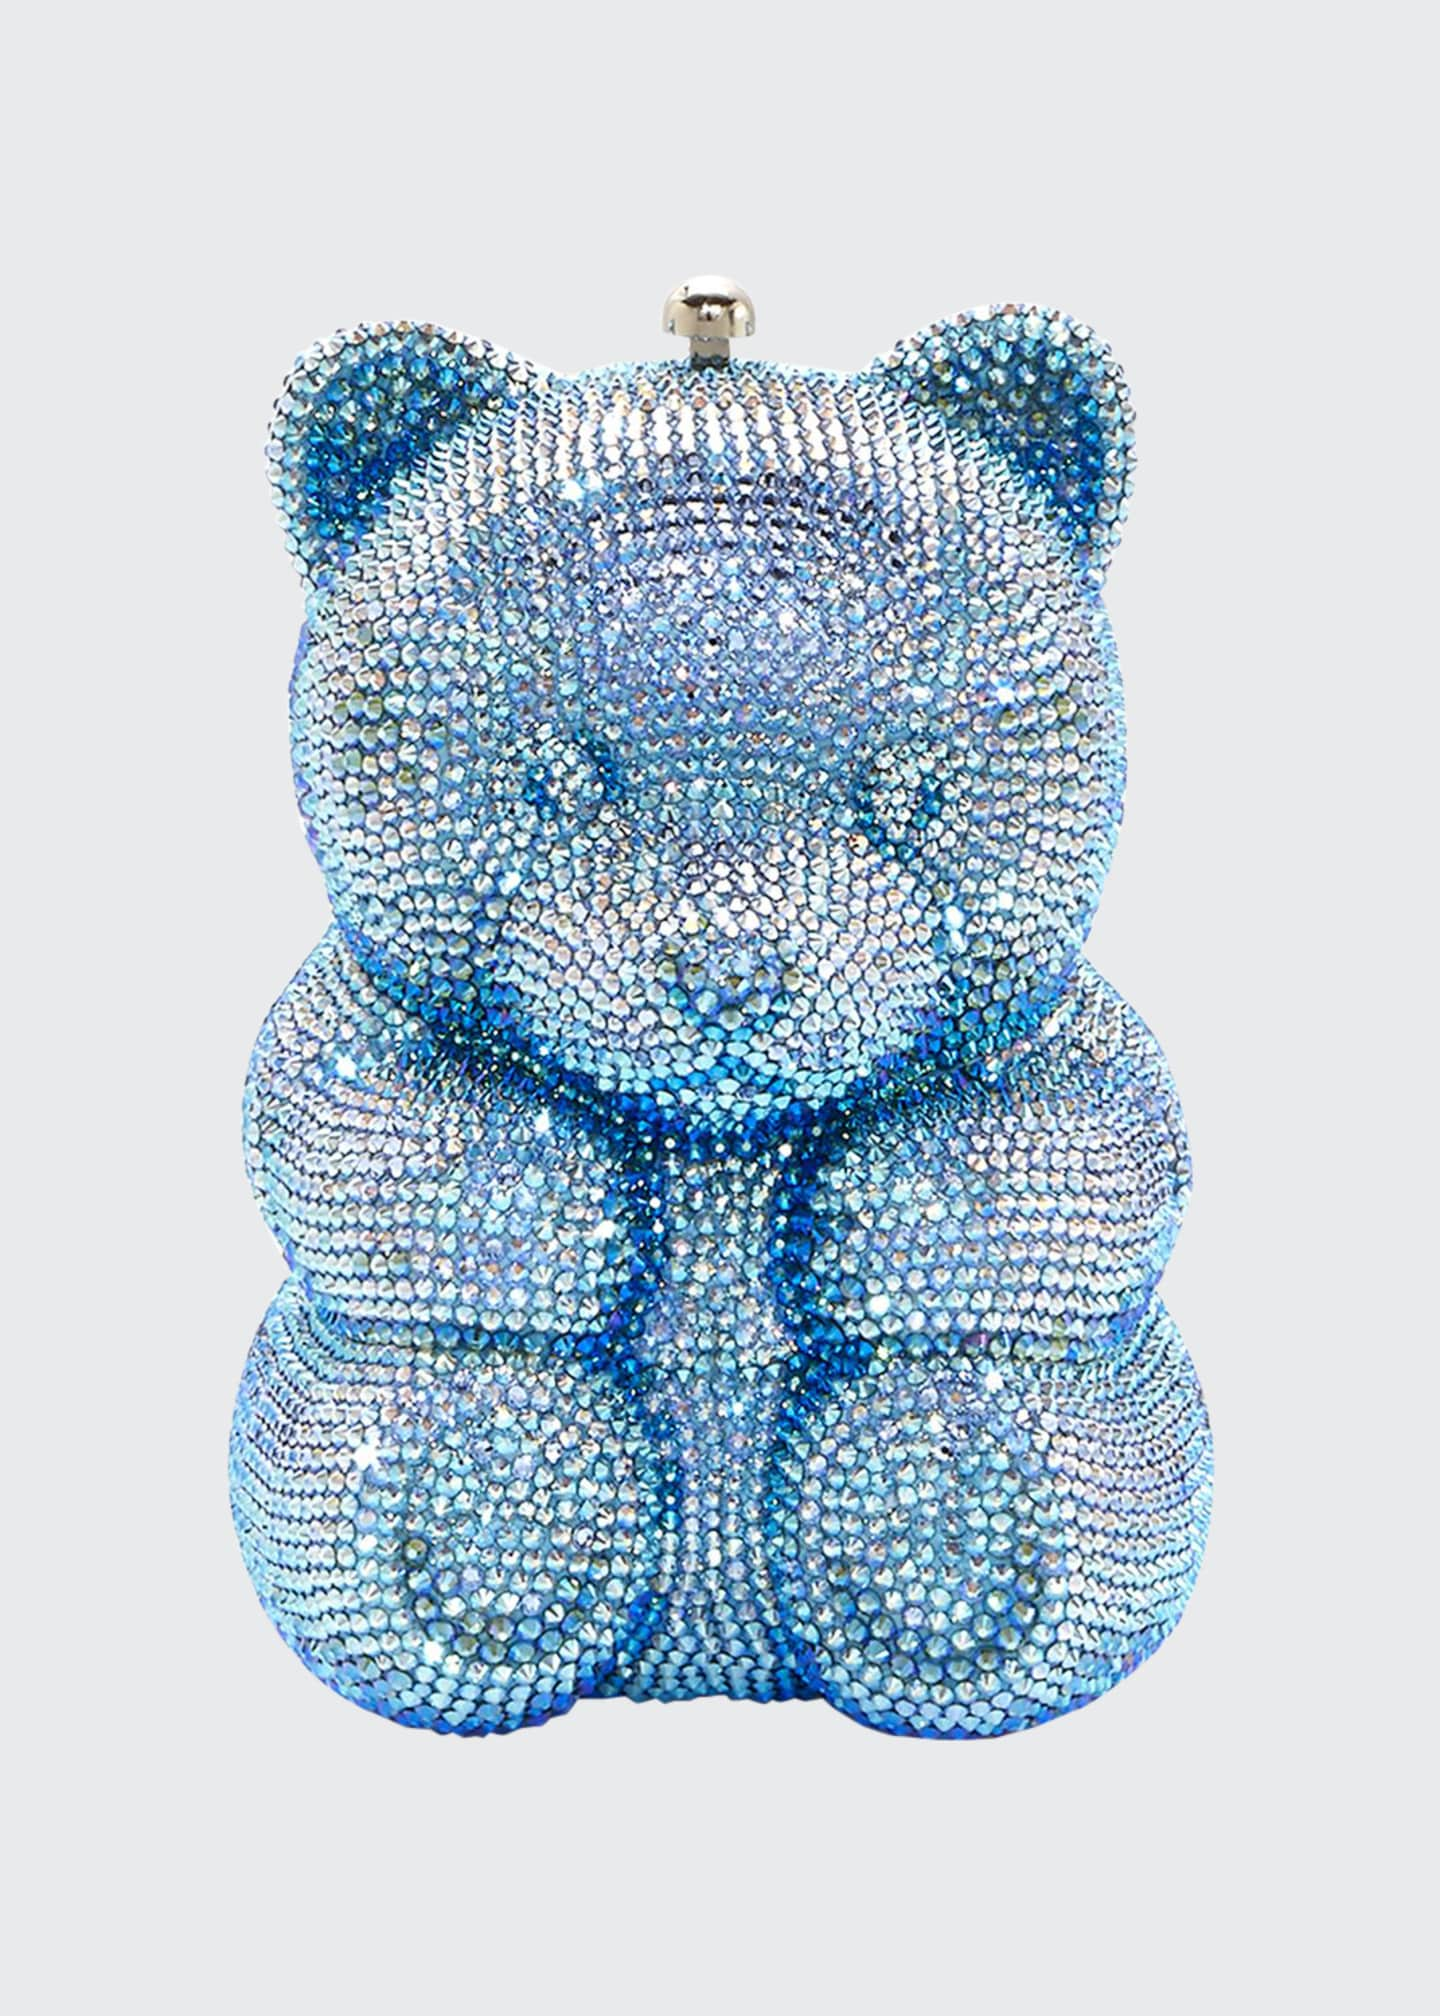 Judith Leiber Couture Gummy Teddy Bear Clutch Bag